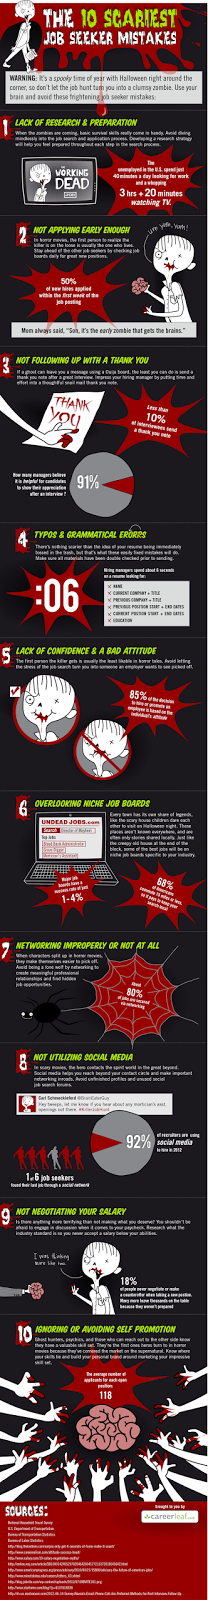 Infographic by CareerLeaf